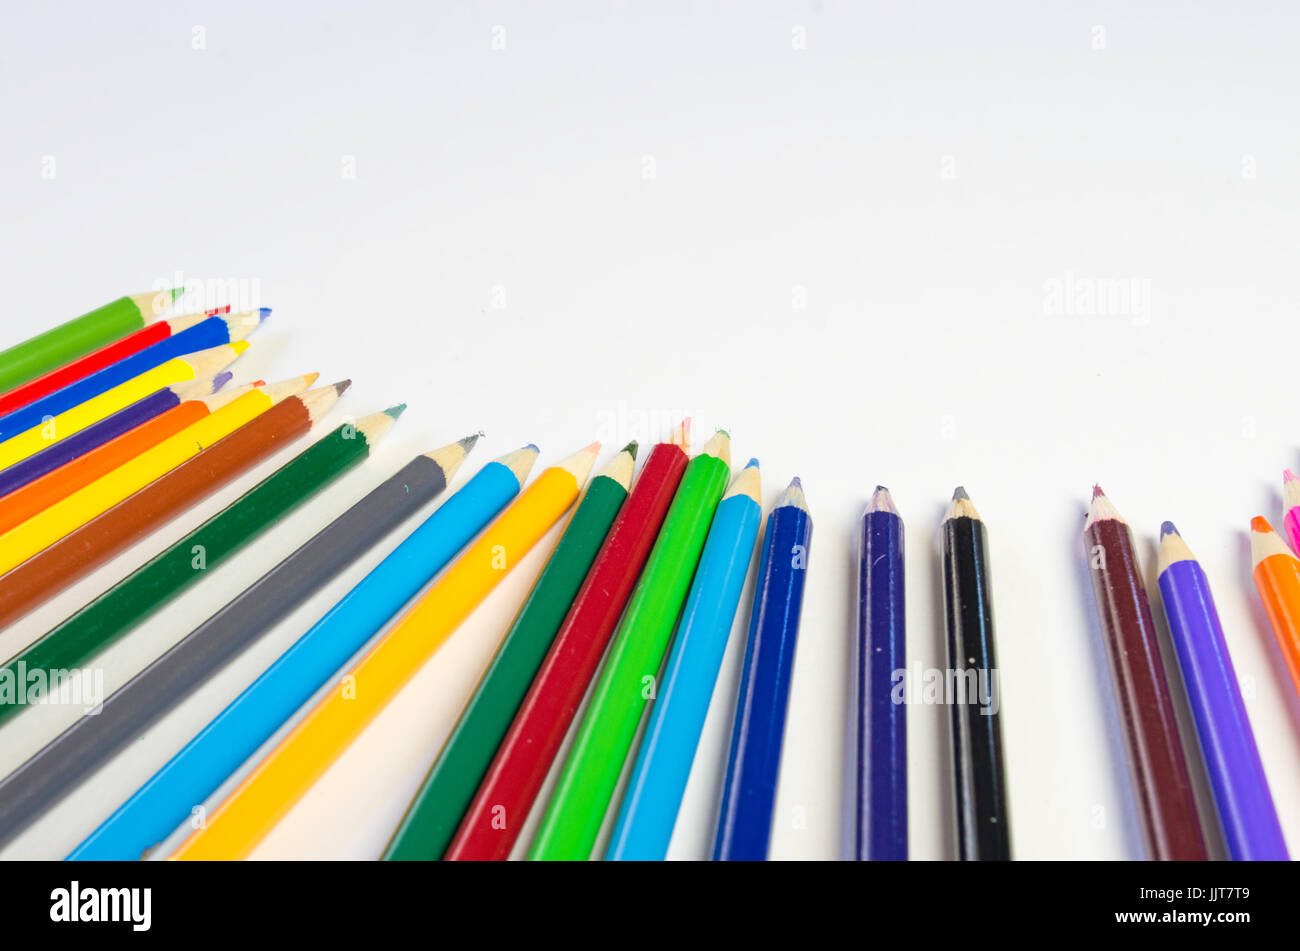 Colored pencil border on white background - Stock Image